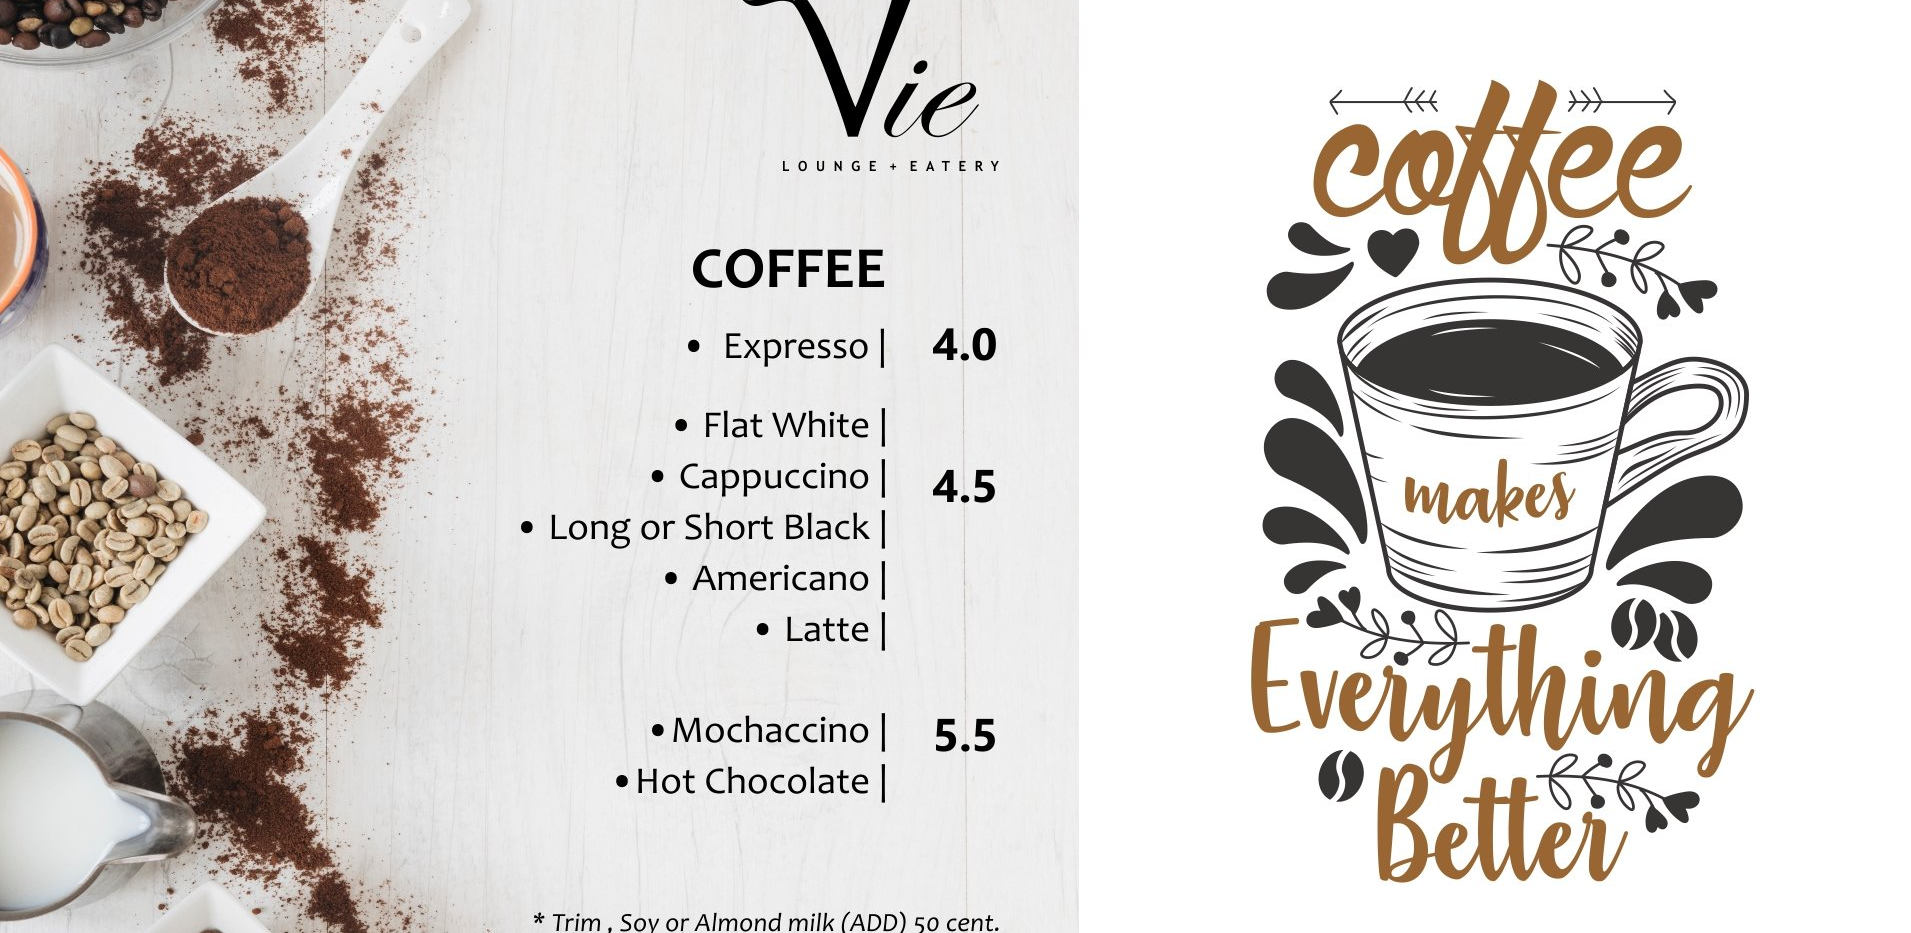 COFFEE PROMO VIE JUne 2019.jpg